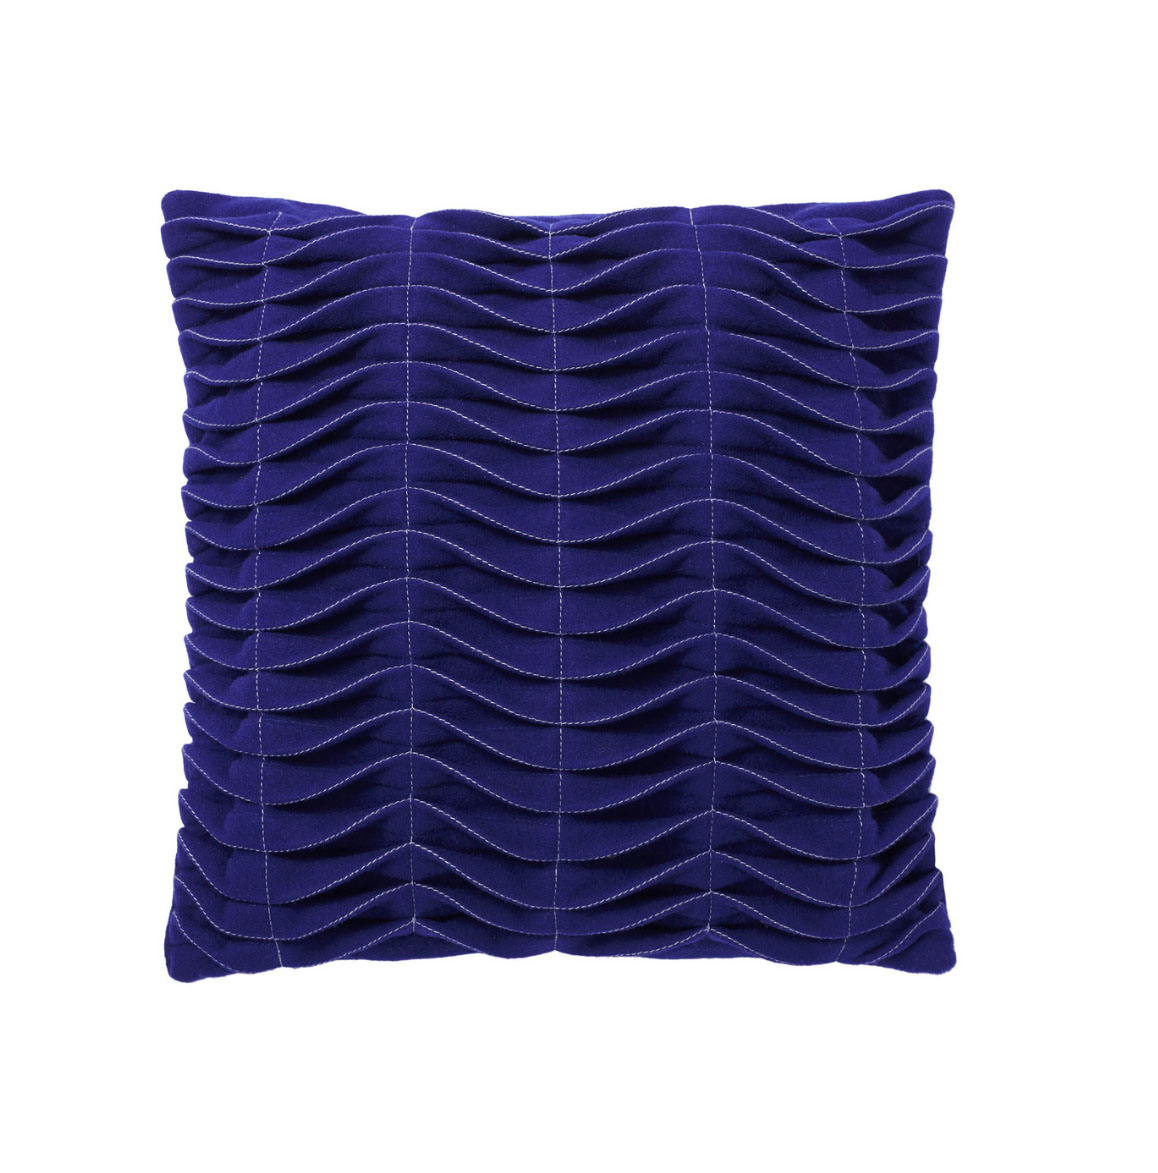 LEIVAS+CUSHION+IN+ELECTRIC+BLUE copy.jpg